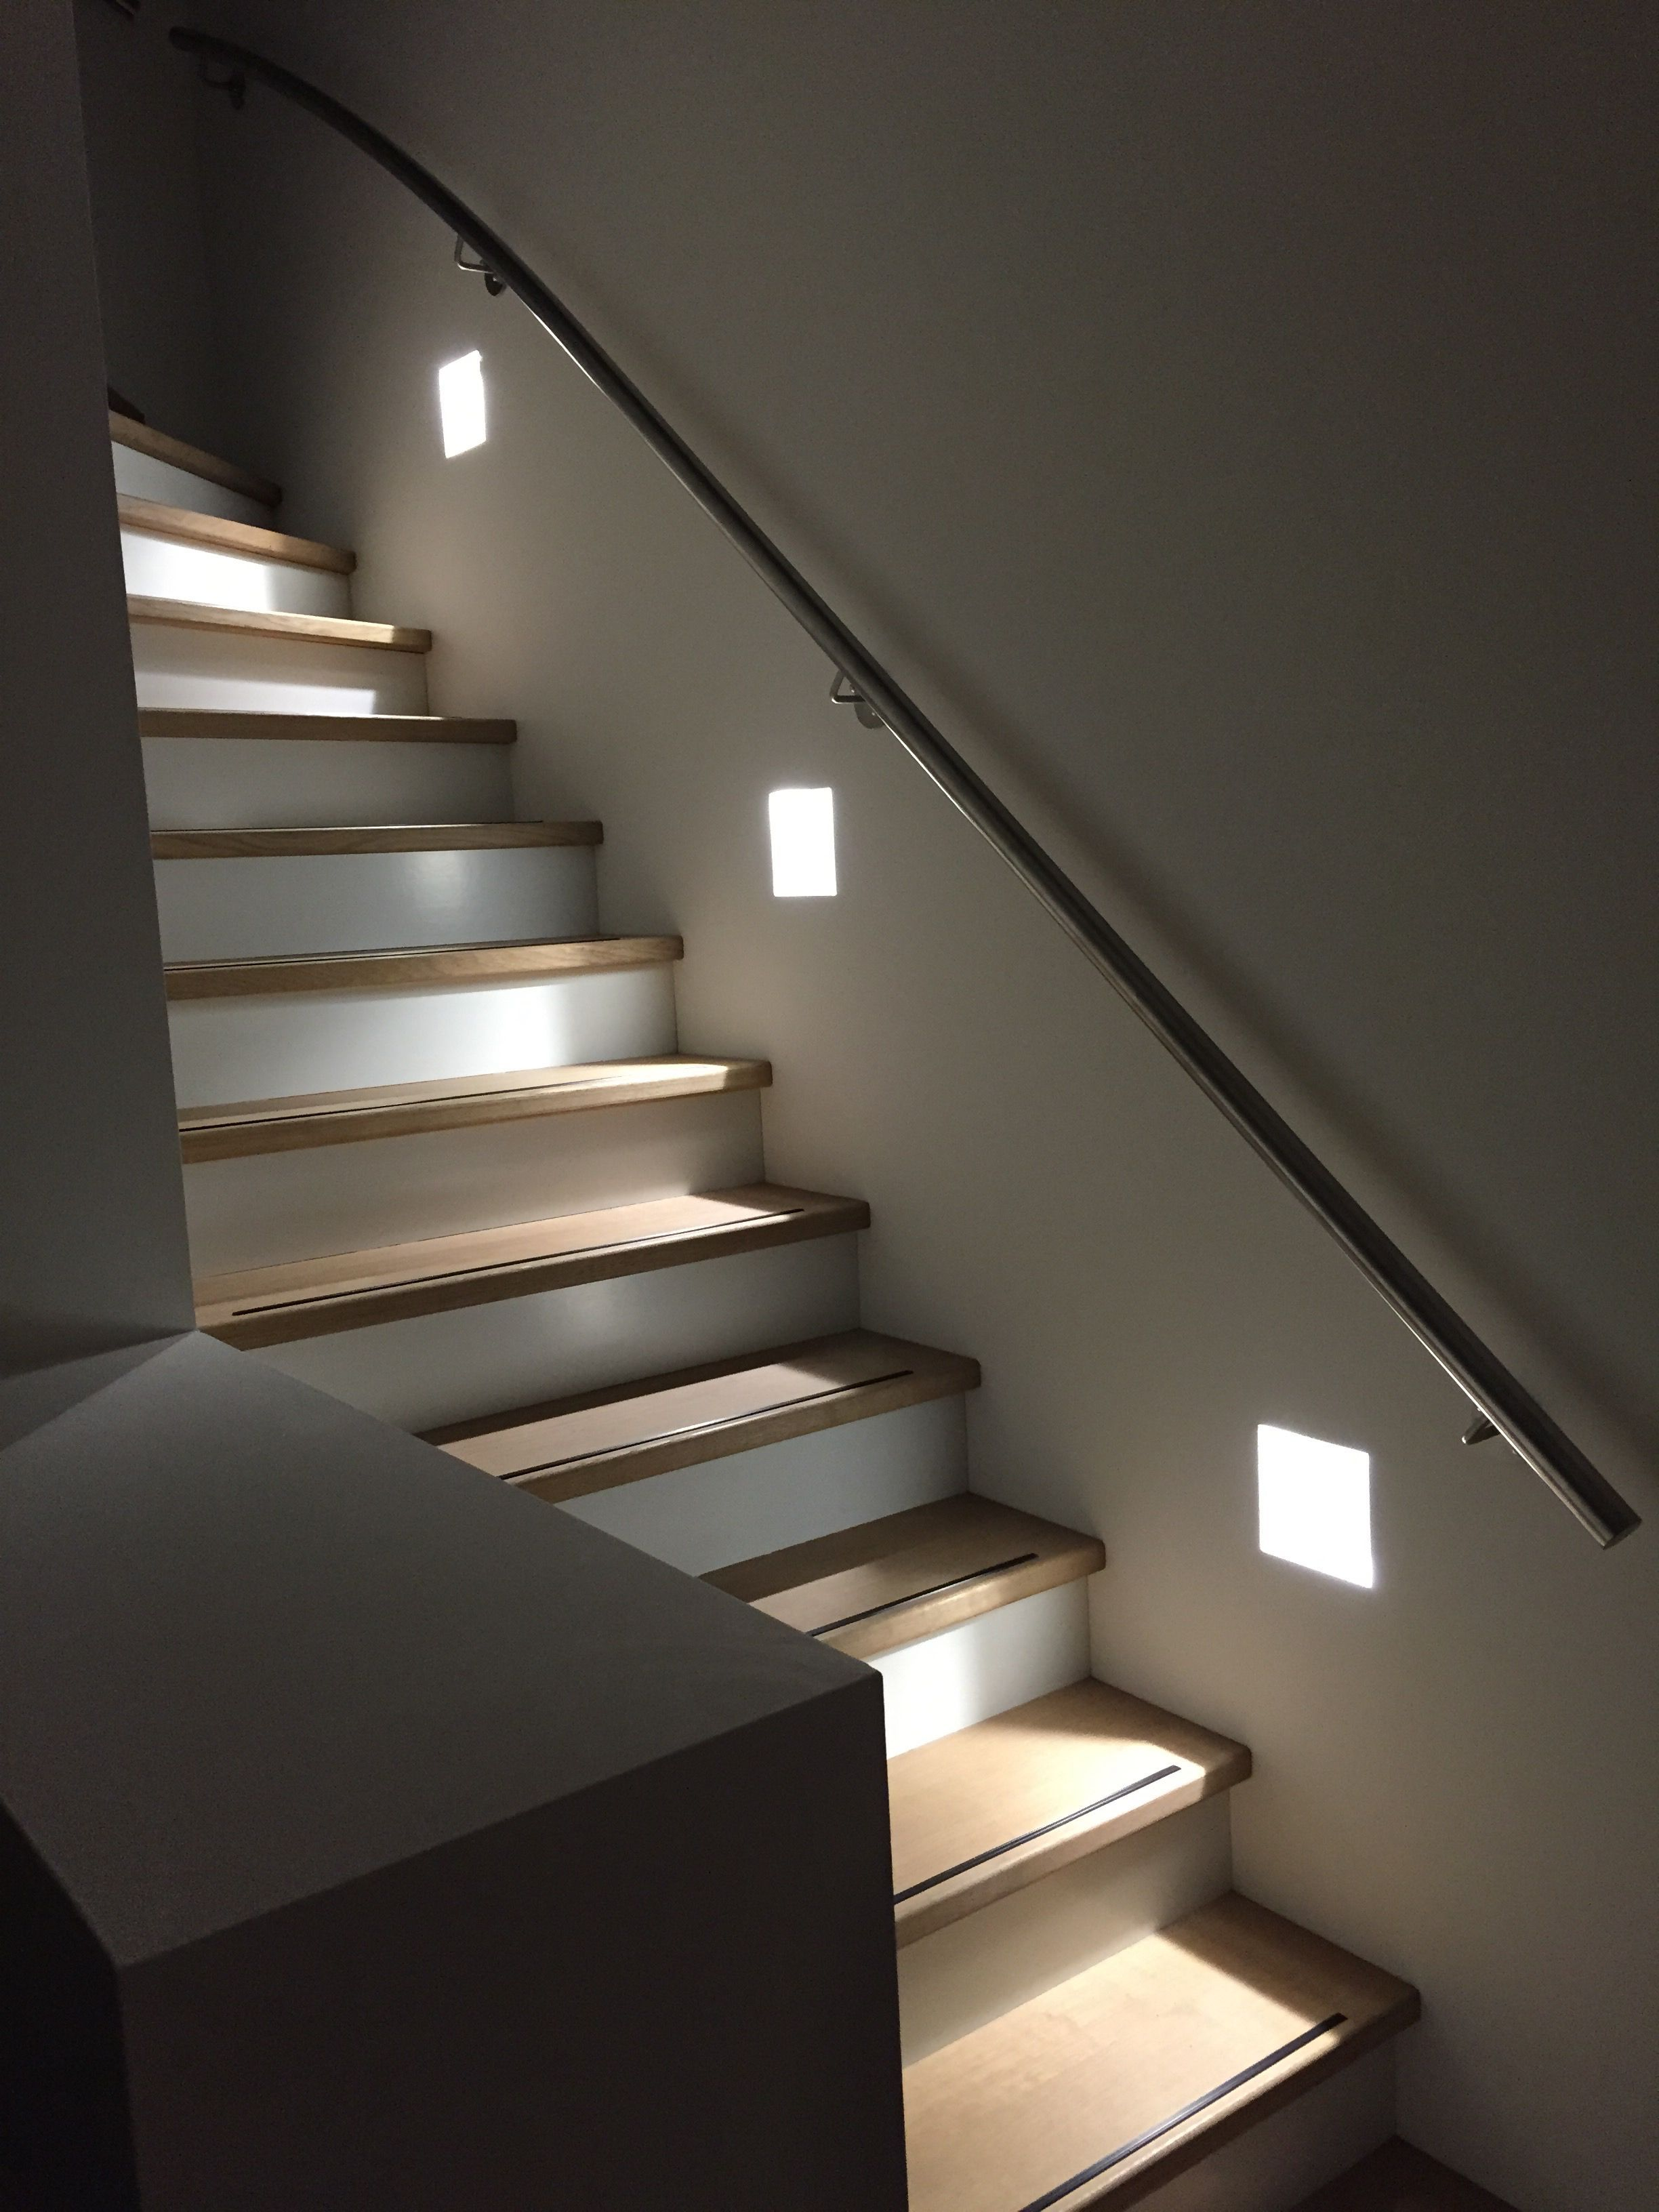 10 Stairway Lighting Ideas That Will Impress You Tags Basement Stairway Lighting Ideas Deck Stair L Stair Lighting Stair Lights Indoor Stairway Lighting